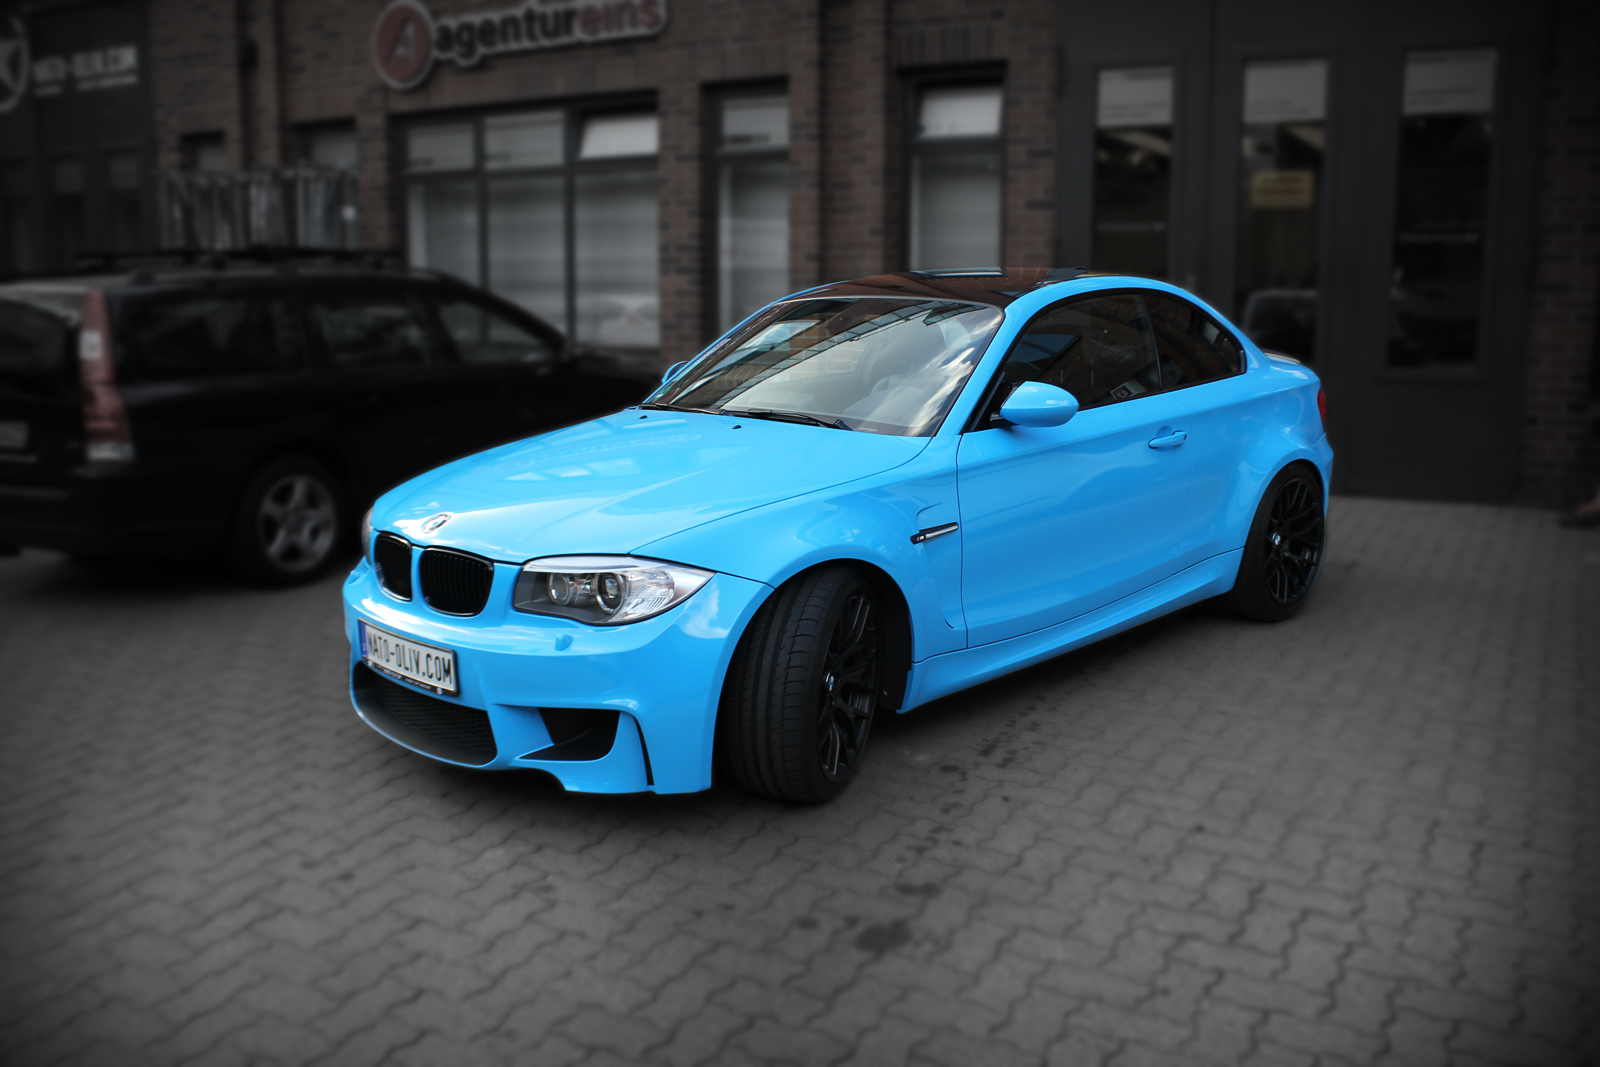 bmw 1er m coup in light blue mit schwarz matten extras. Black Bedroom Furniture Sets. Home Design Ideas